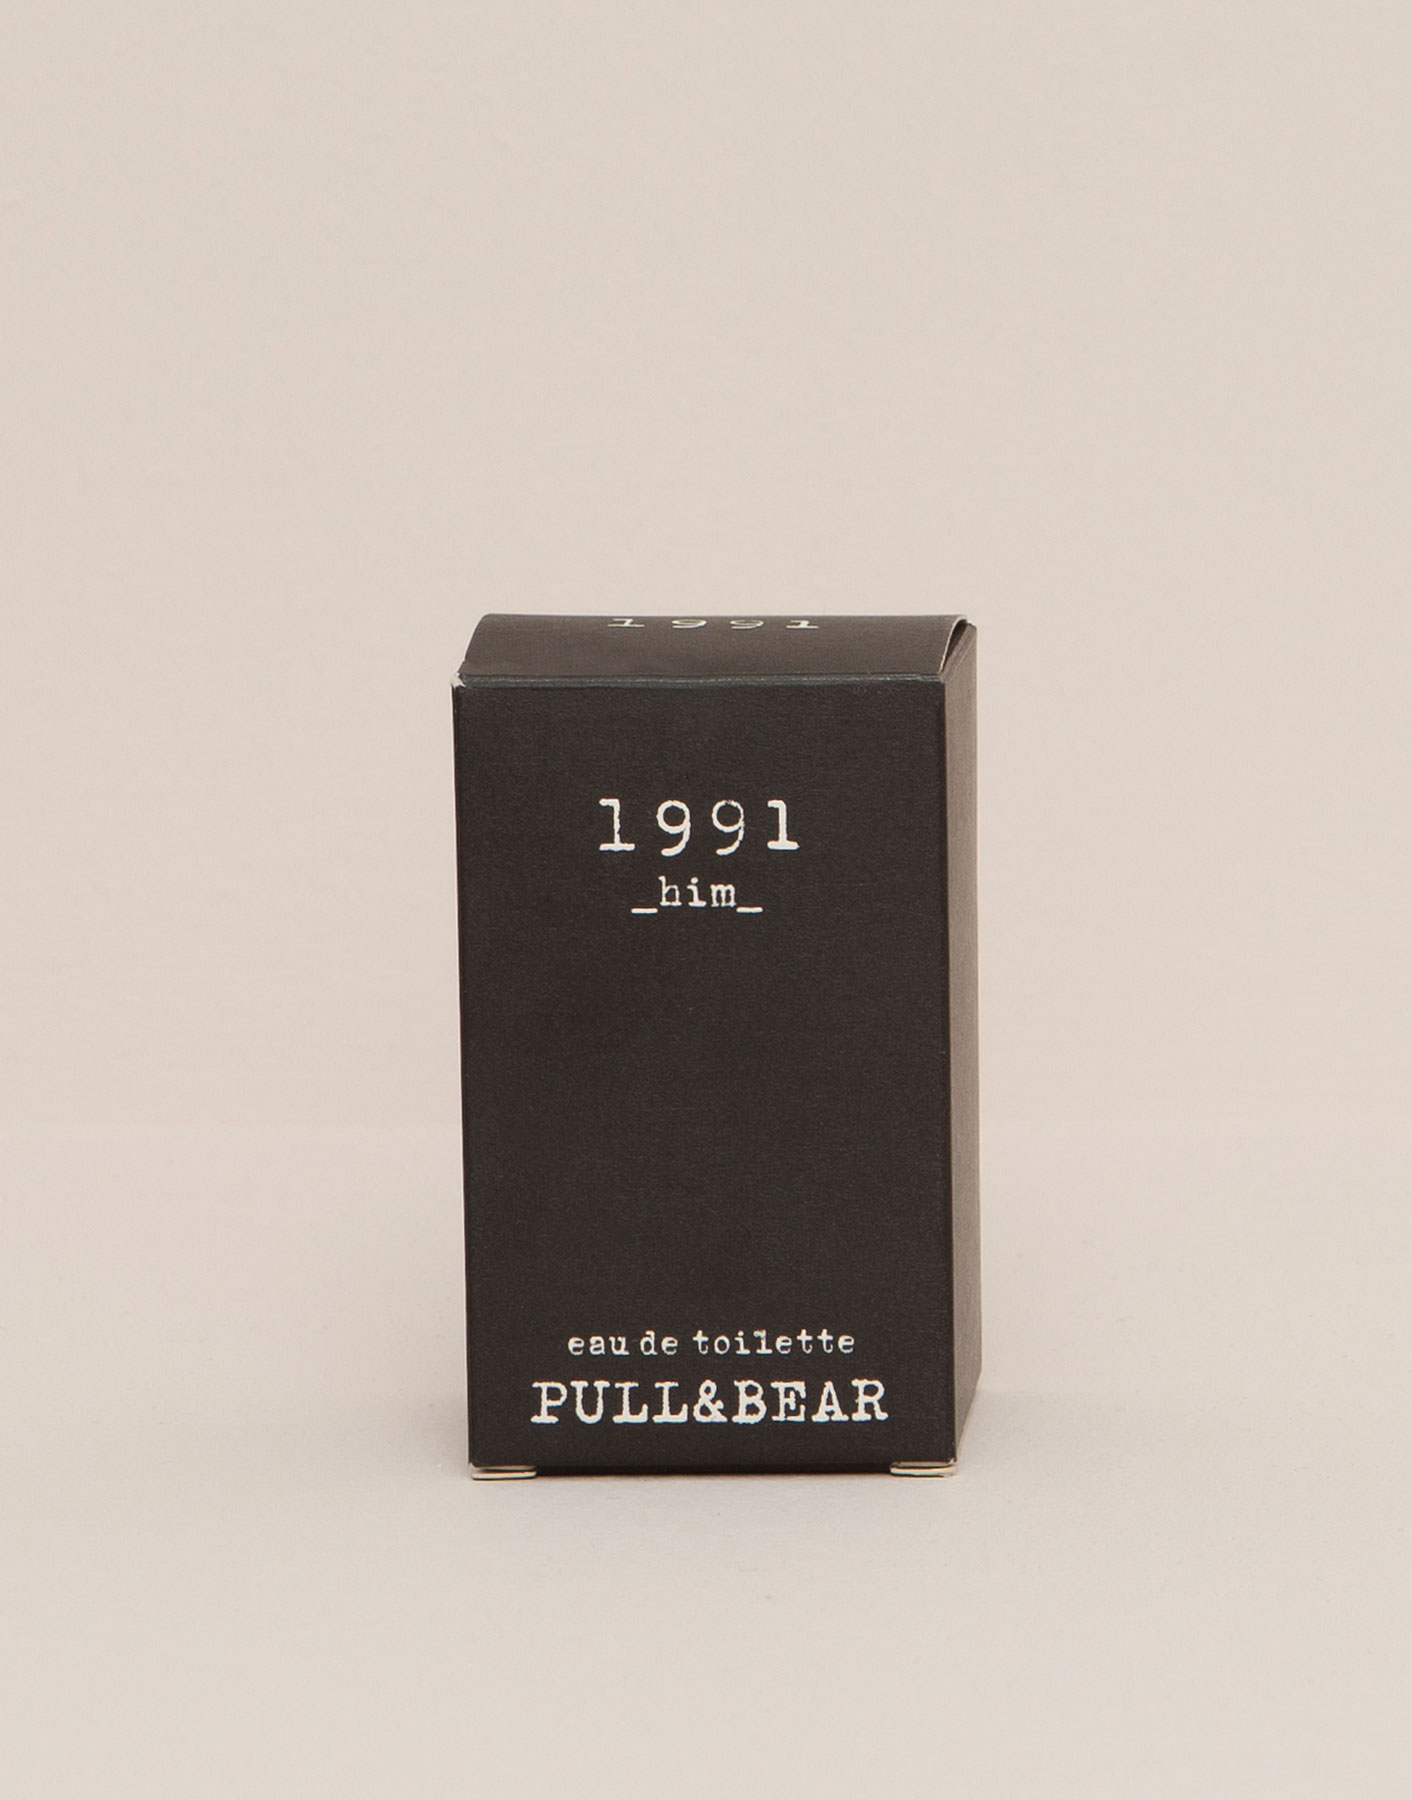 Pull & bear 1991 him eau de cologne